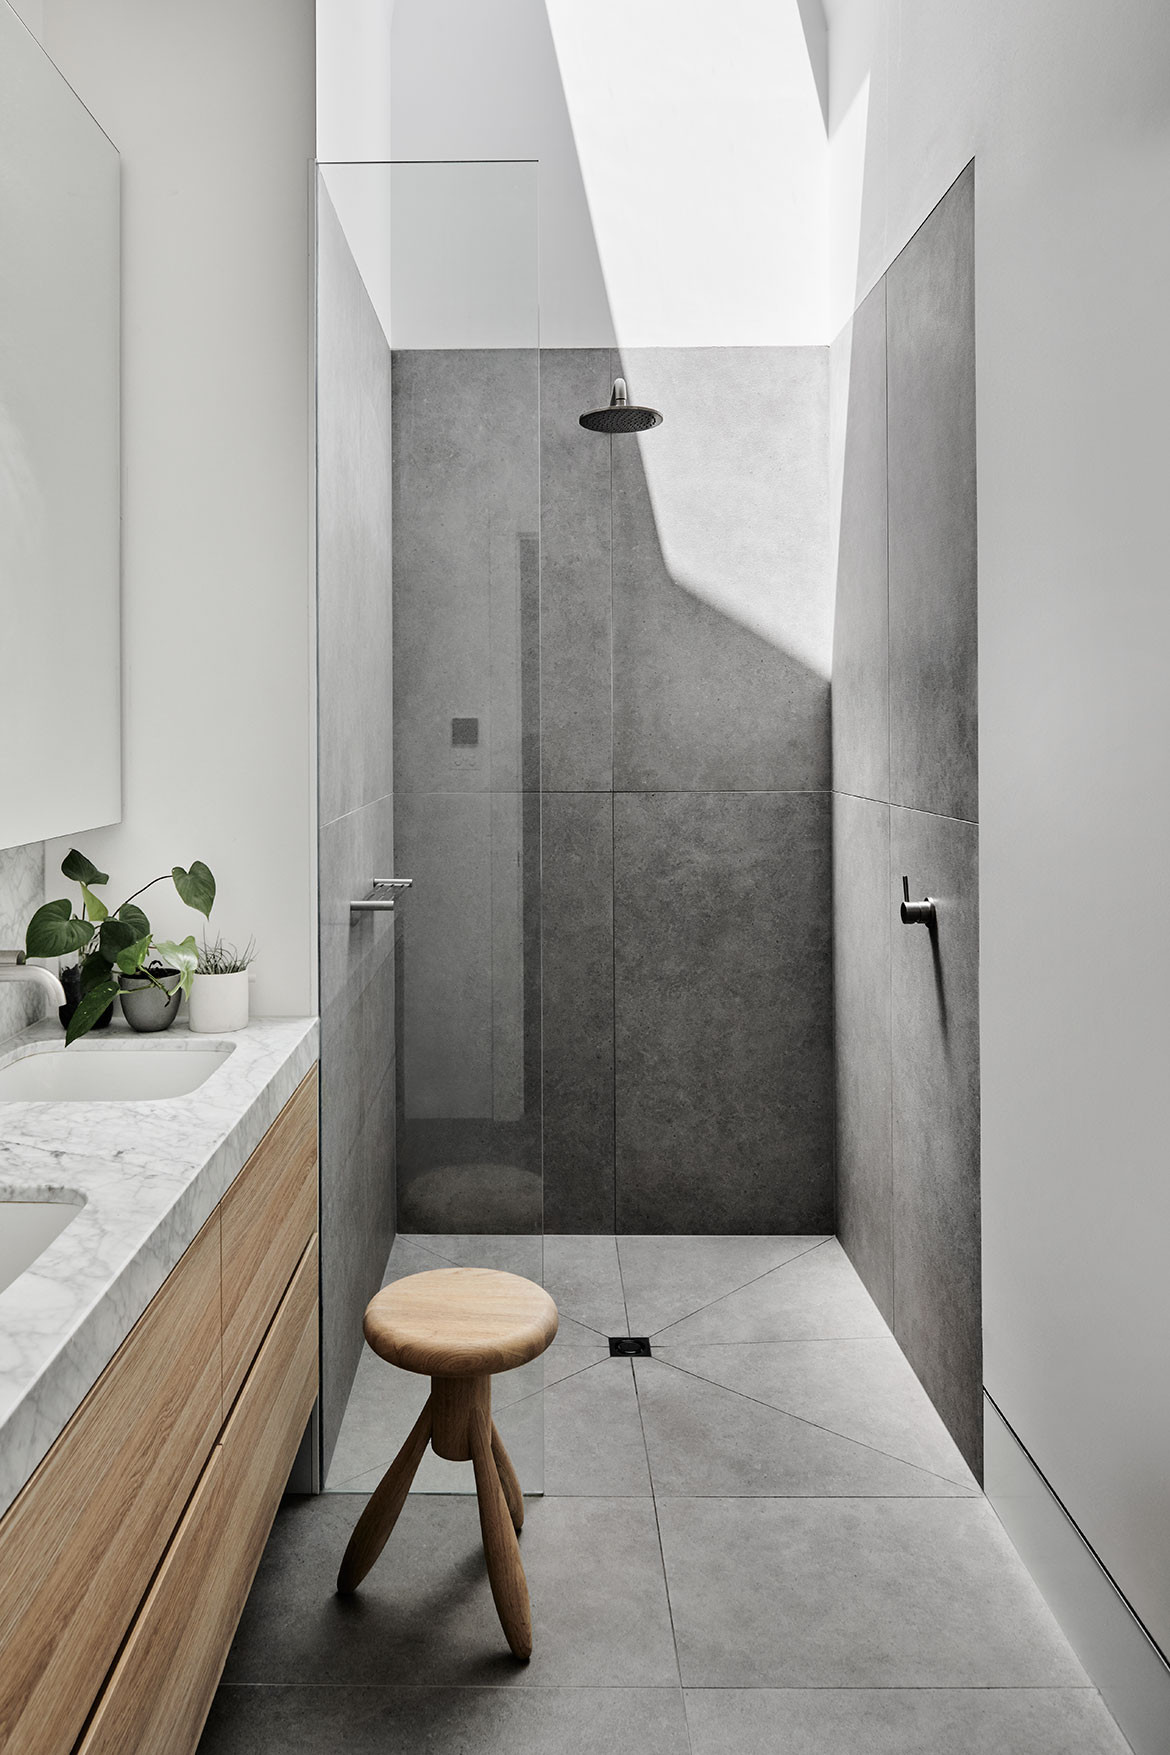 Prahran Residence Pipkorn Kilpatrick cc Tom Blachford bathroom